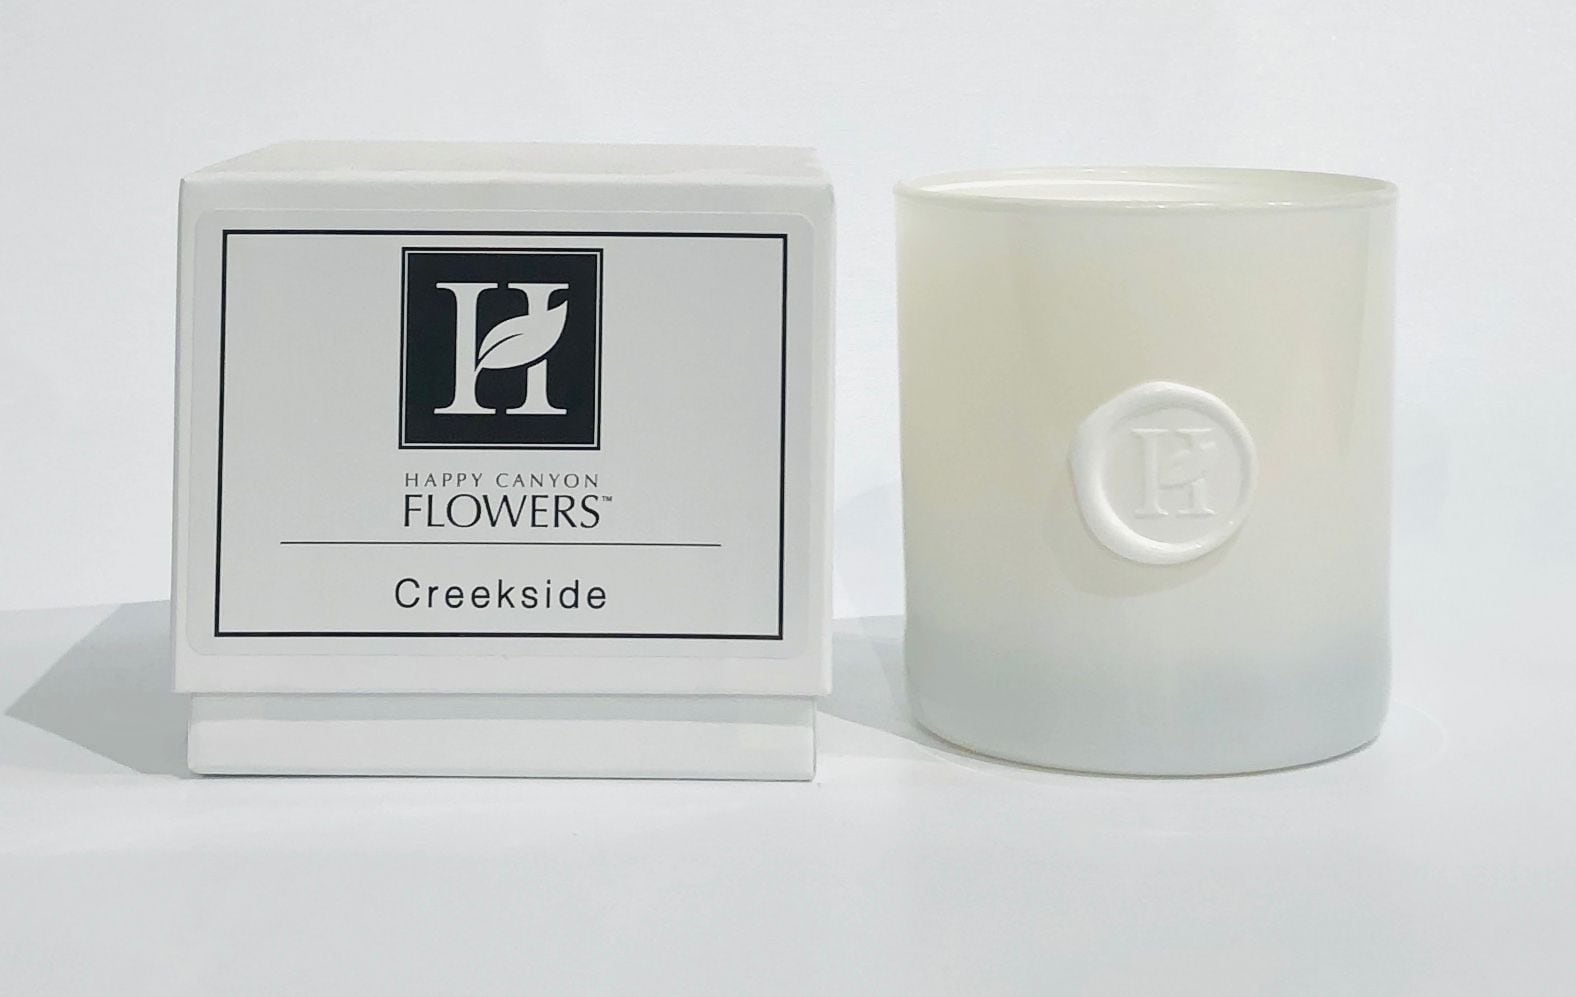 Happy Canyon Flowers Creekside Candle